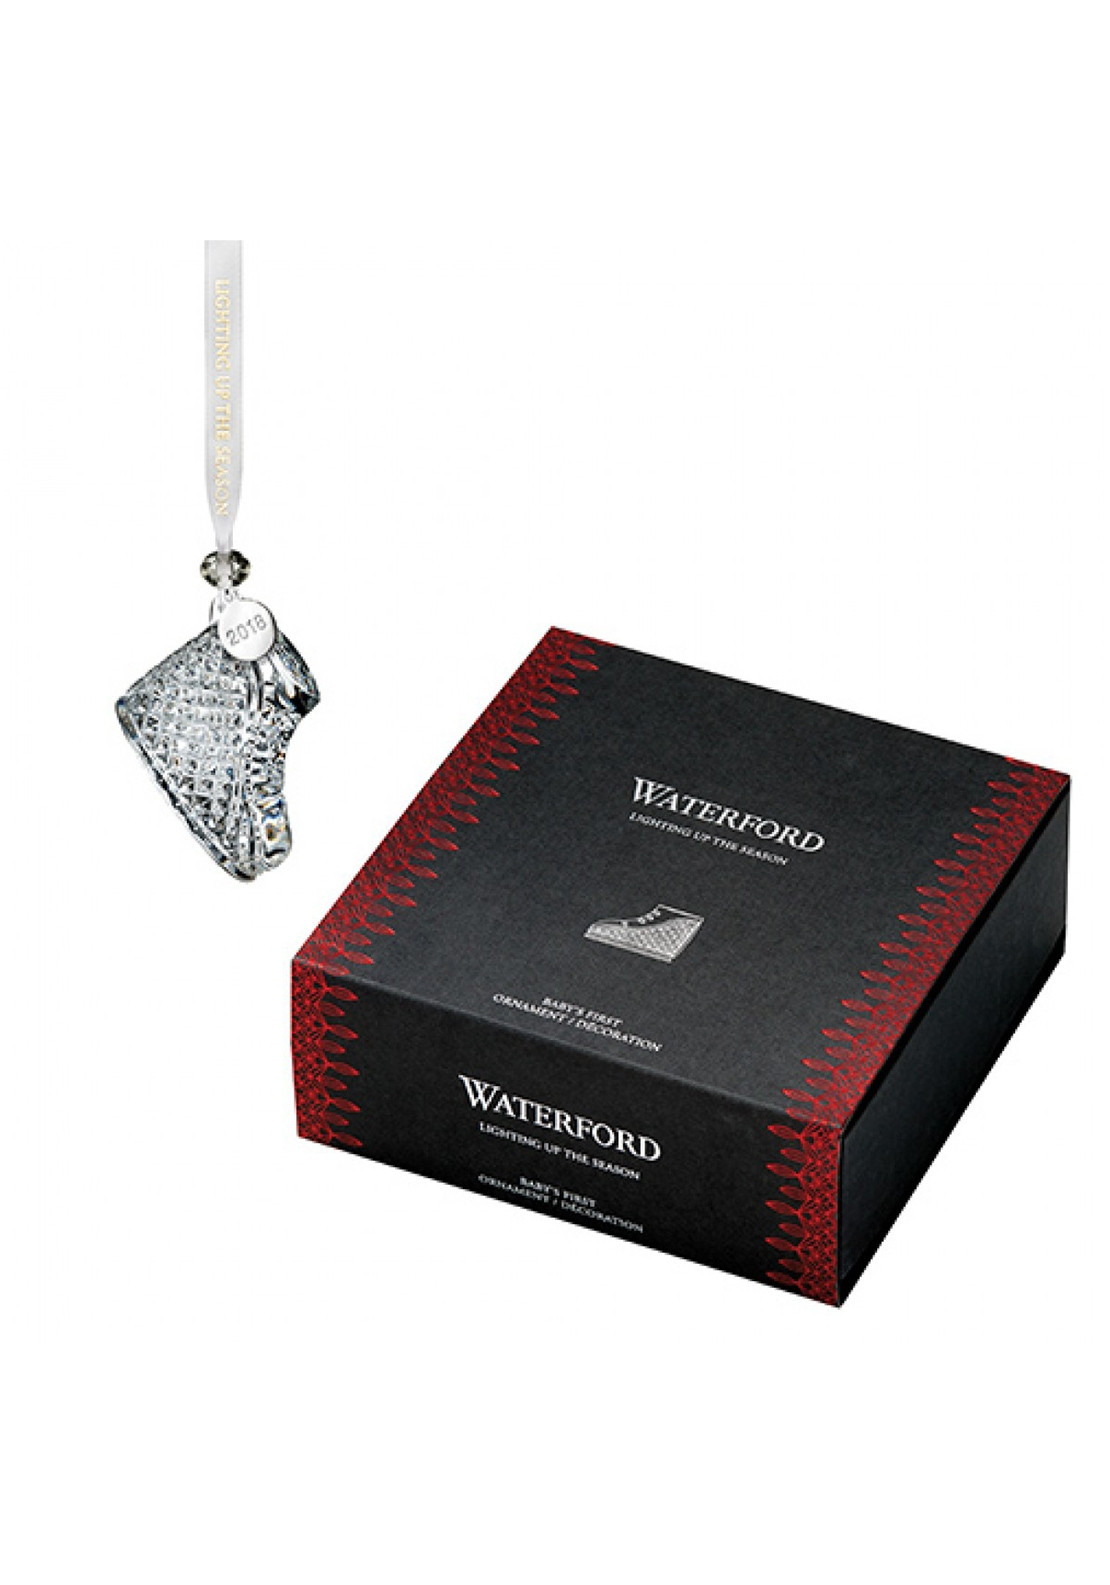 Waterford Crystal Christmas Ornaments.Waterford Crystal Baby S First Christmas Ornament